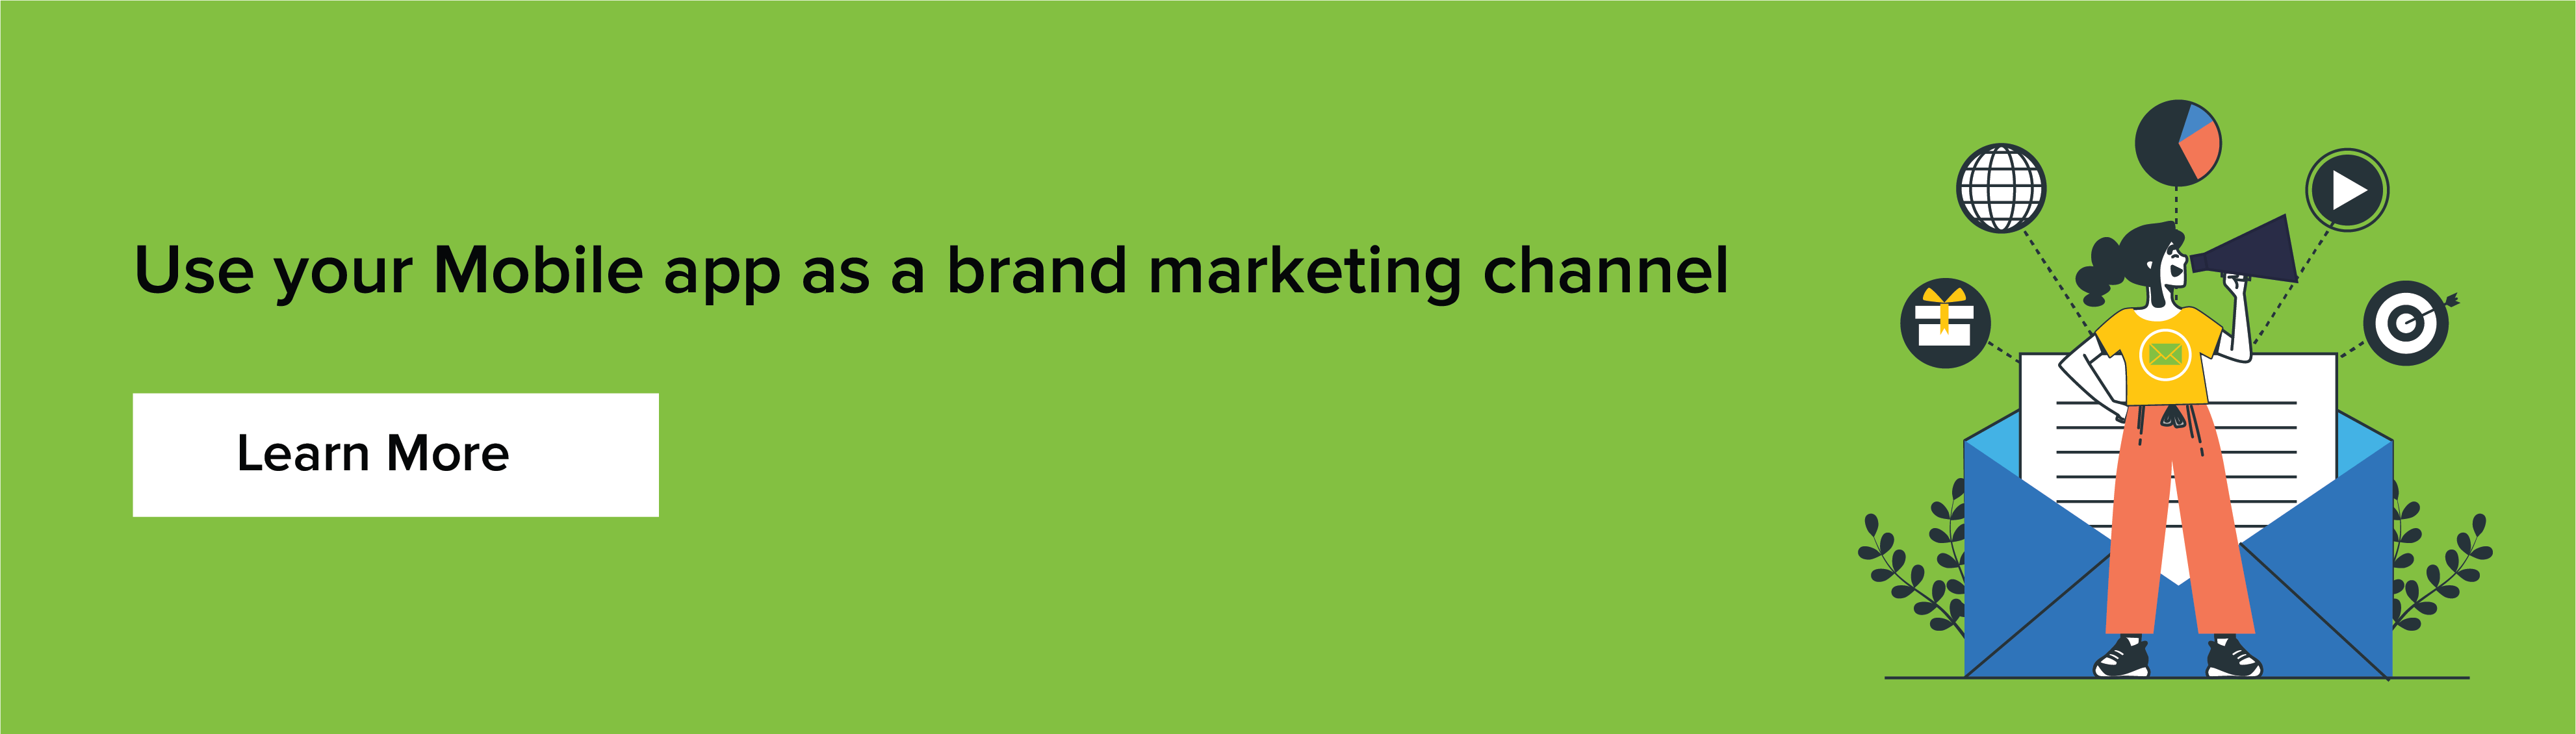 Mobile app as brand marketing channel